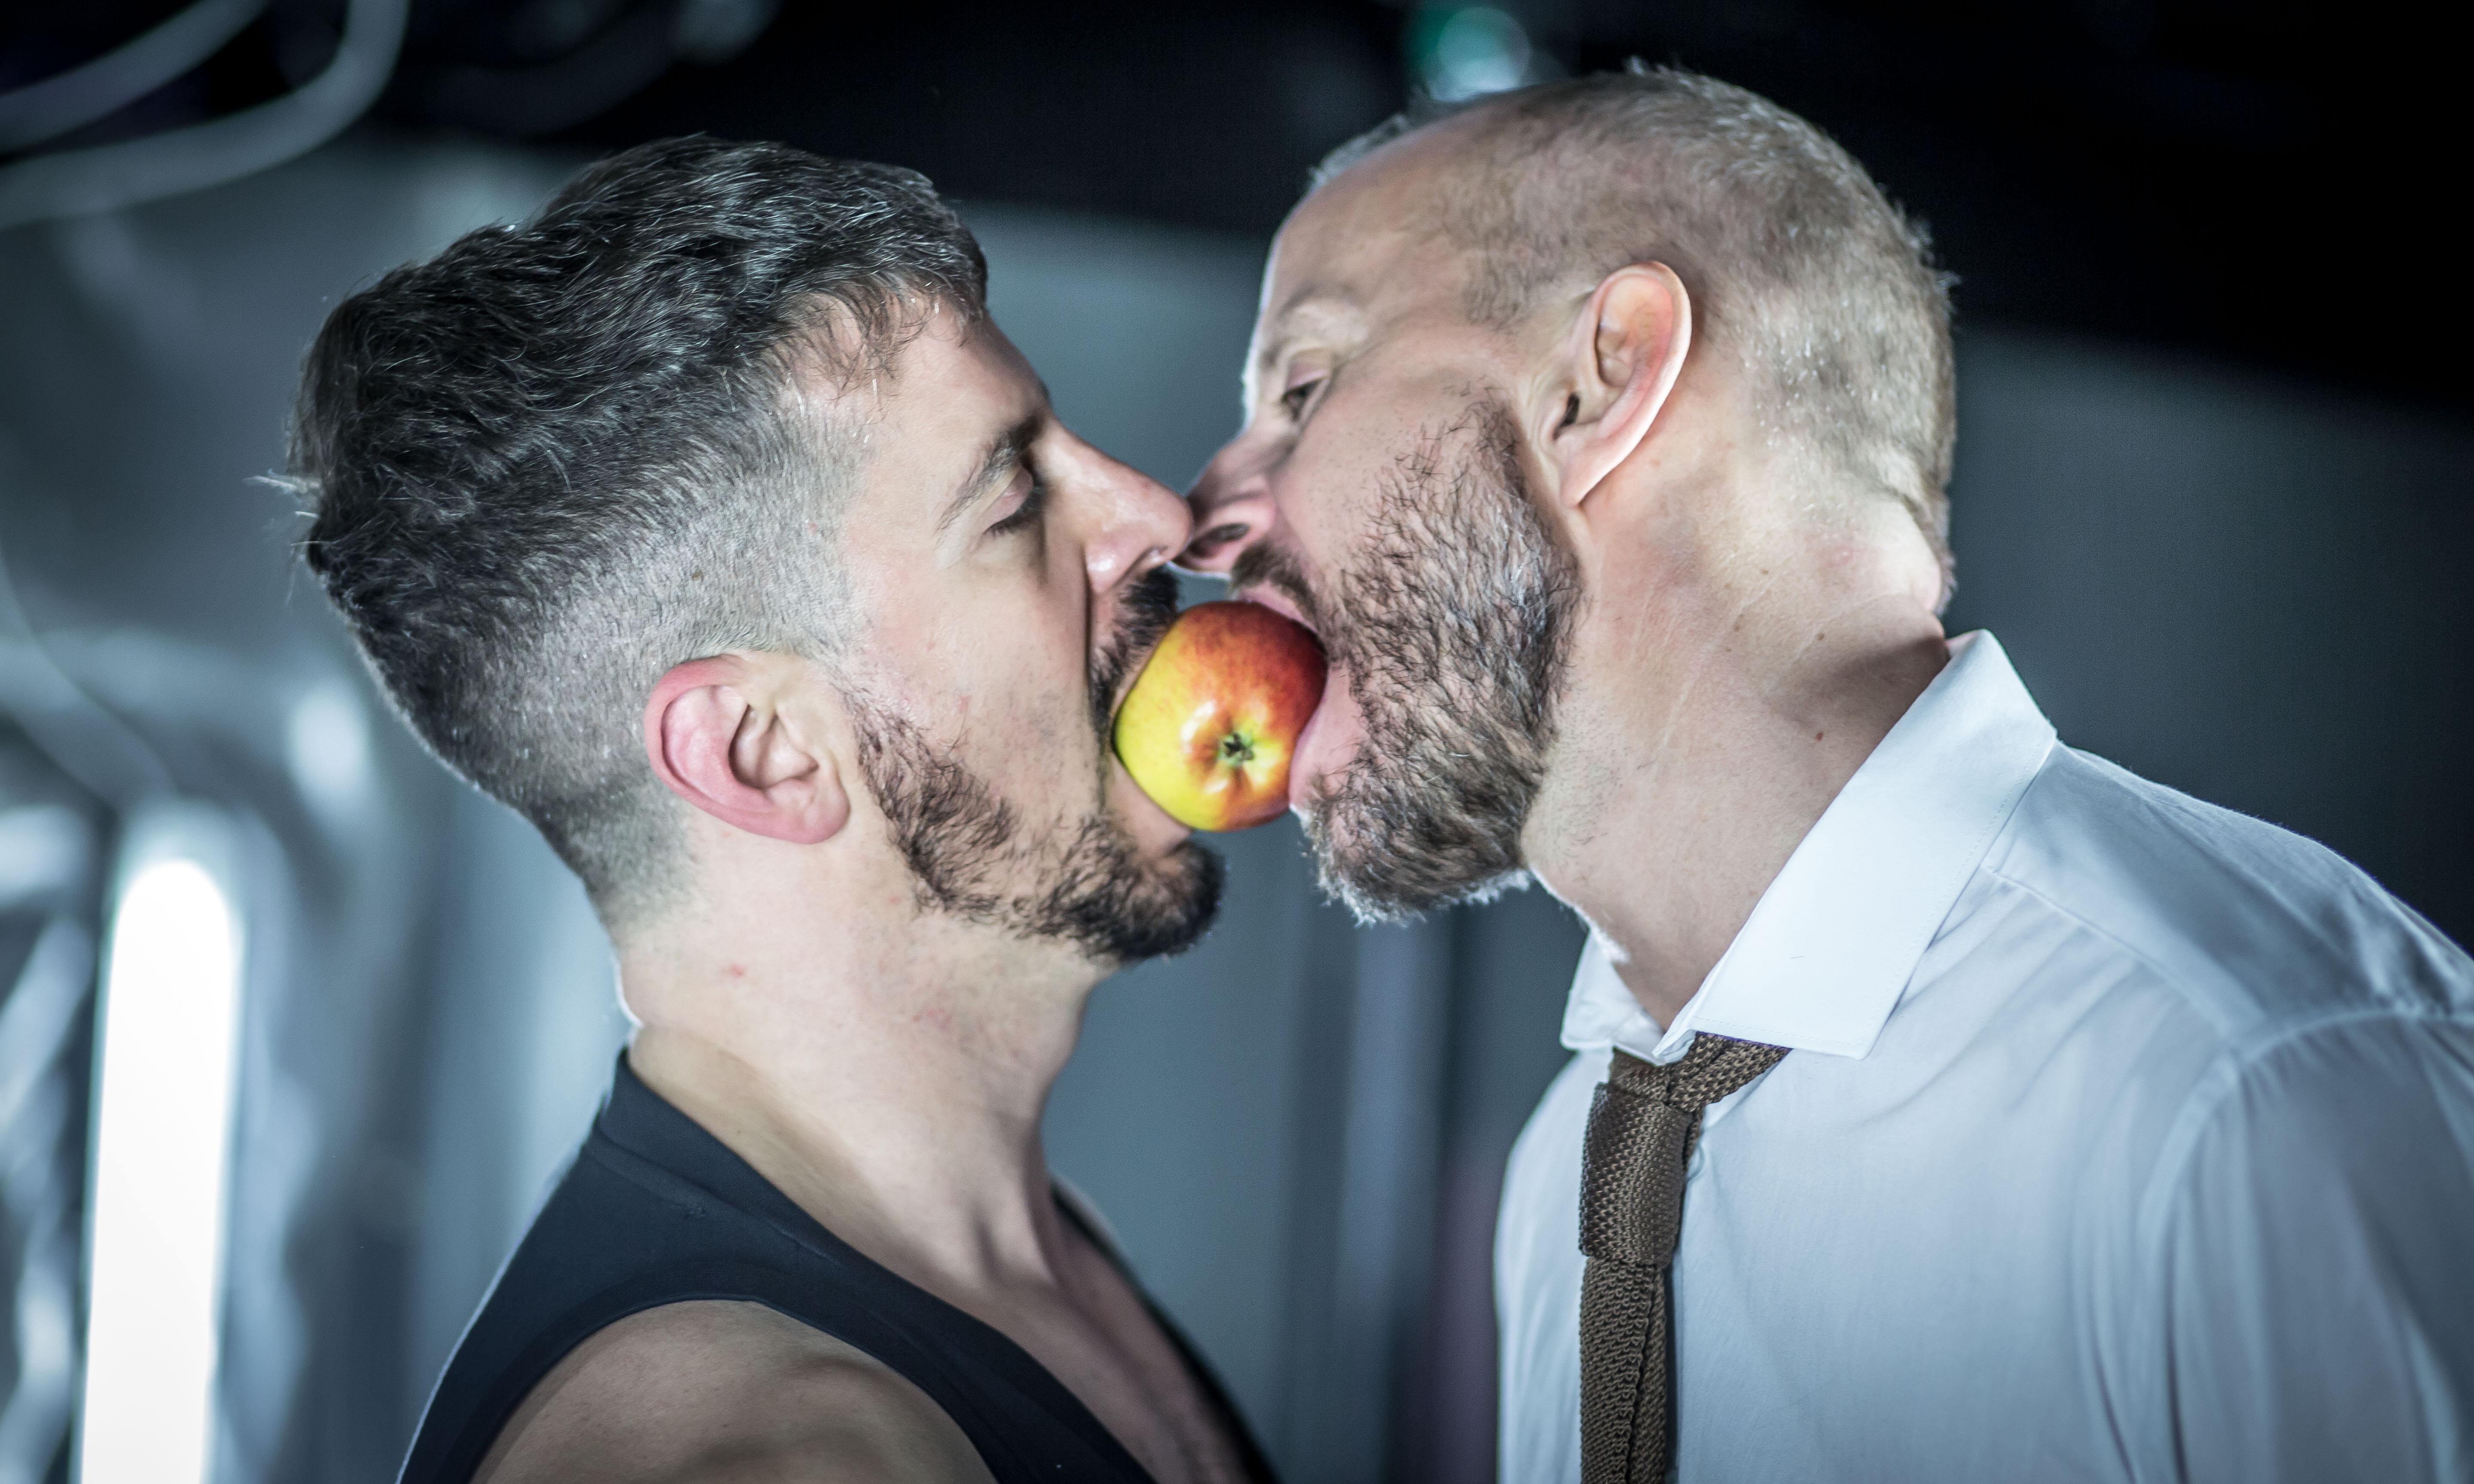 Sex/Crime review – lust, shock and despair in role-play thriller